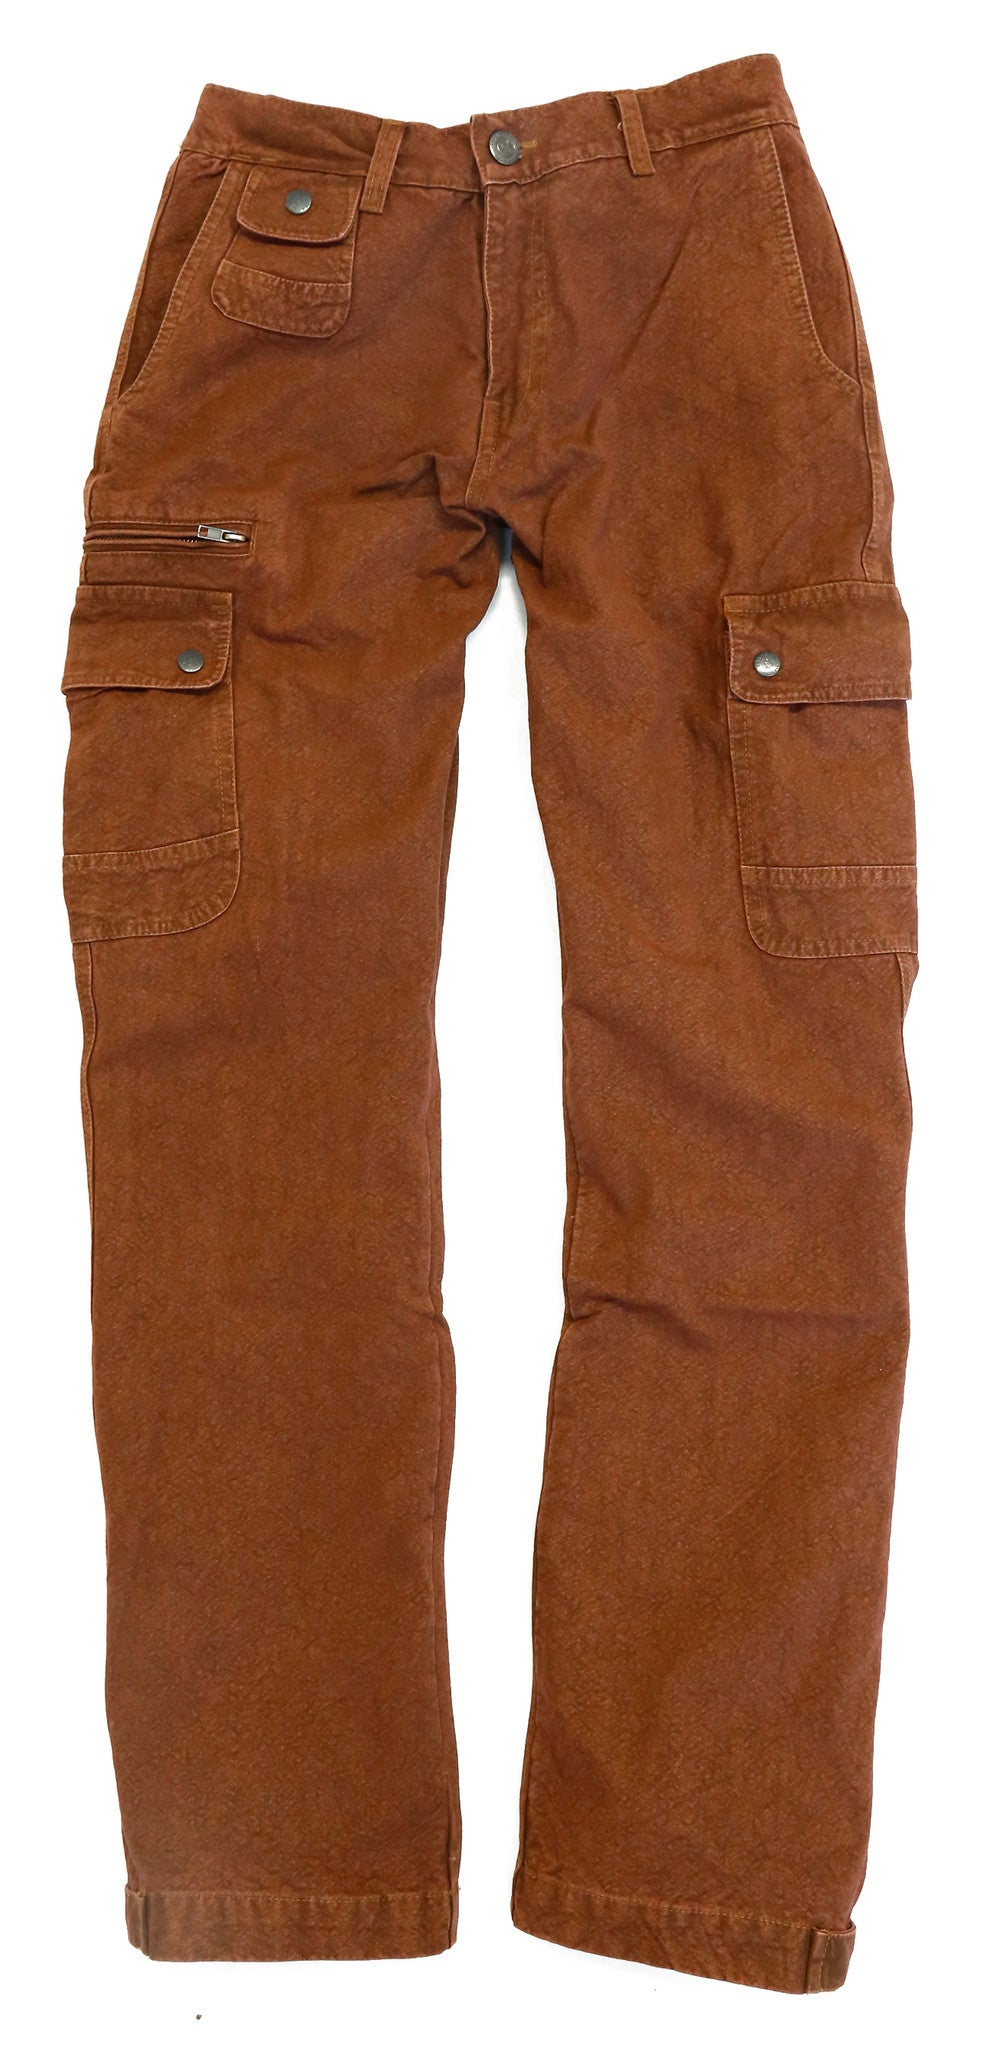 Outdoor | Leisure time Cargo pants strides with narrow legs and many pockets - OUT OF AUSTRALIA | Kakadu Traders Australia